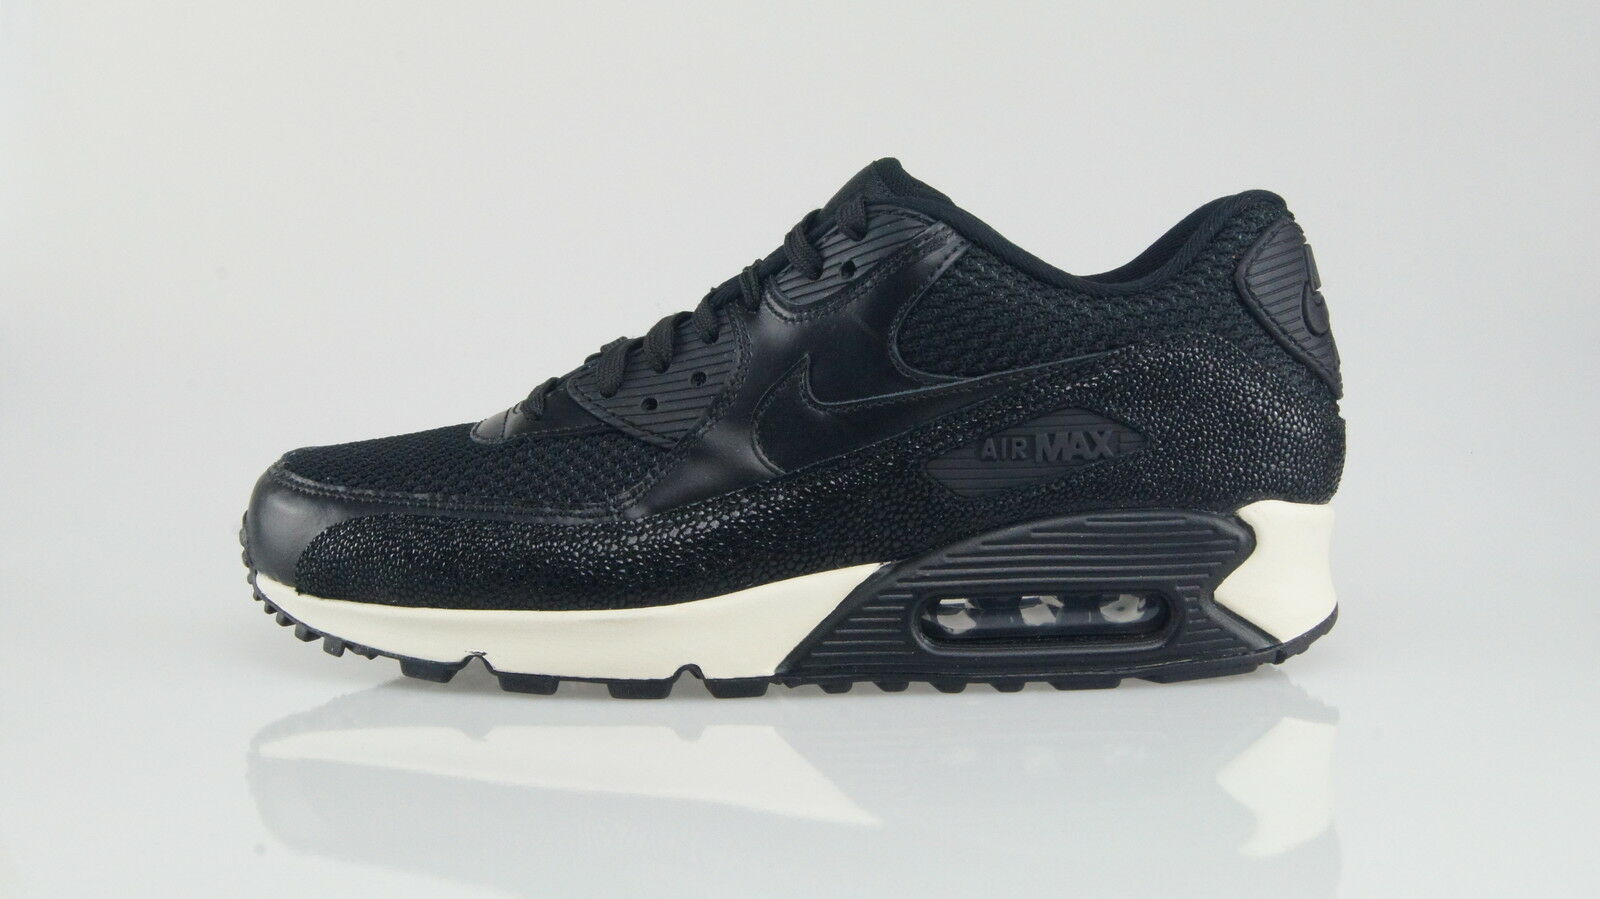 NIKE AIR MAX Size 90 LEATHER PA Size MAX 42 (8,5US) bcd2c4